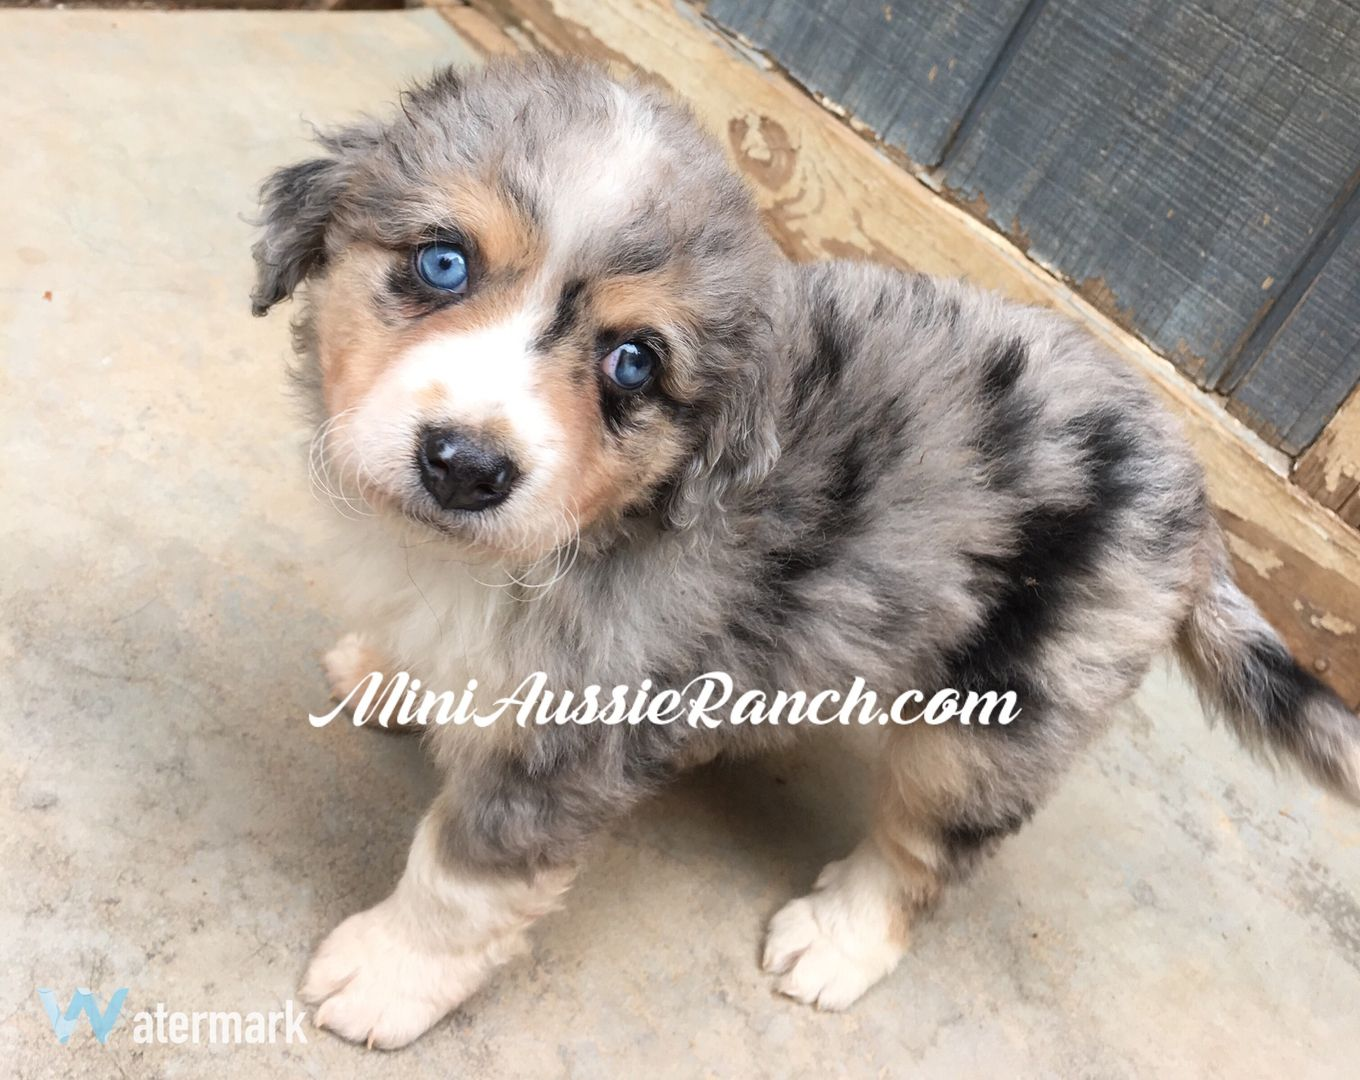 Available Puppies Australian Shepherd Puppies Puppies For Sale